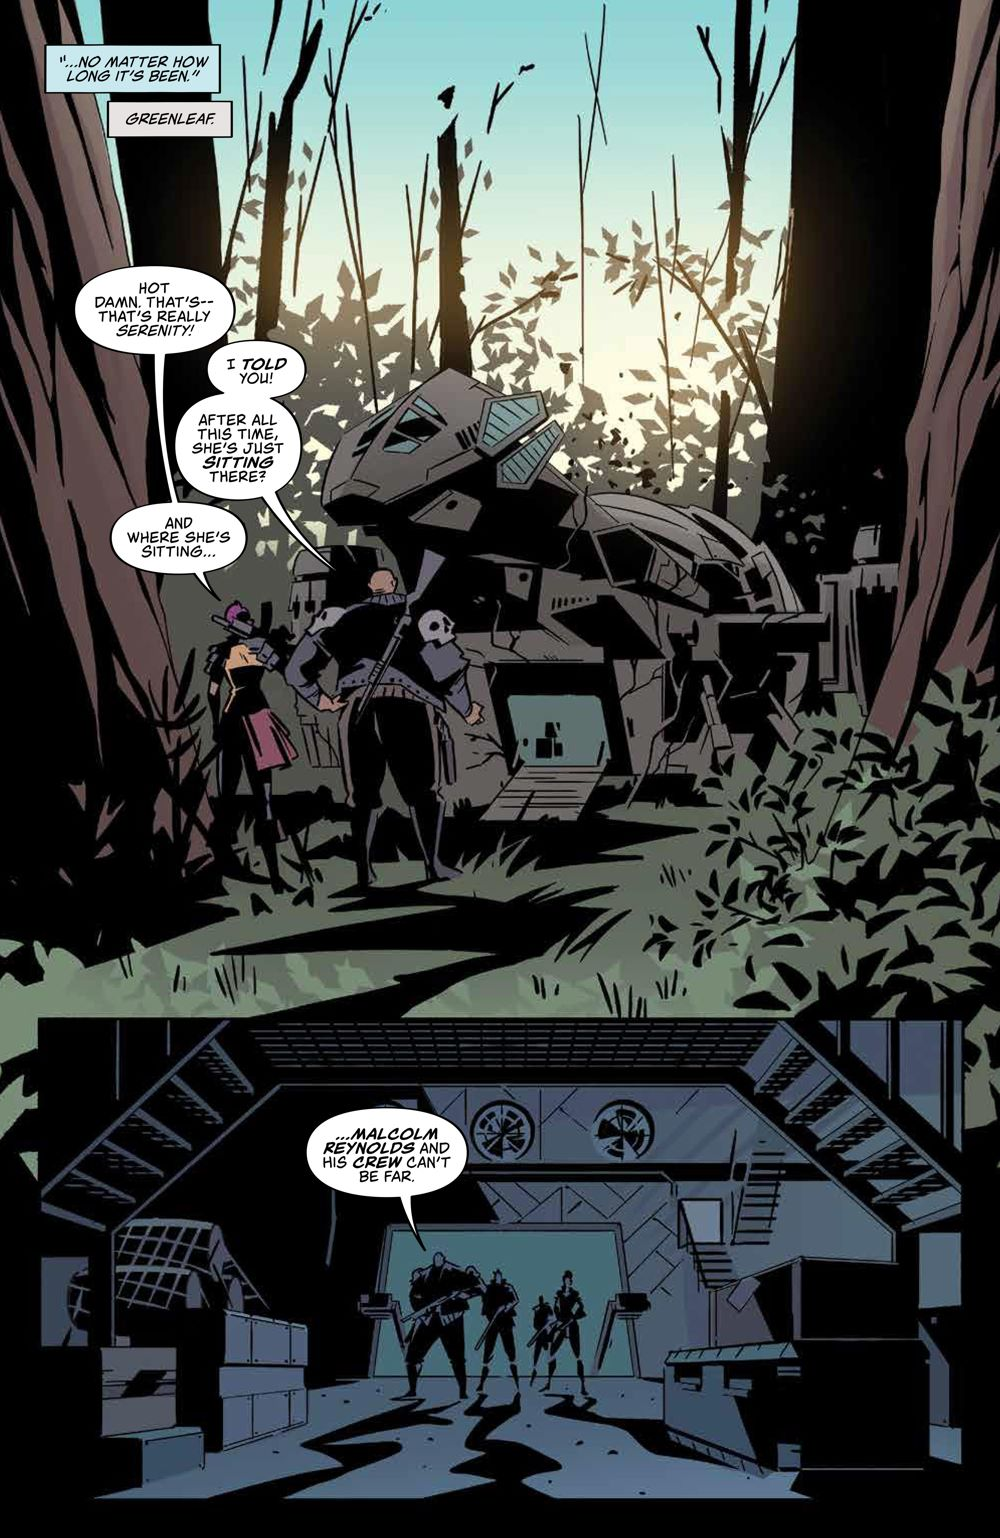 Firefly_025_PRESS_7 ComicList Previews: FIREFLY #25